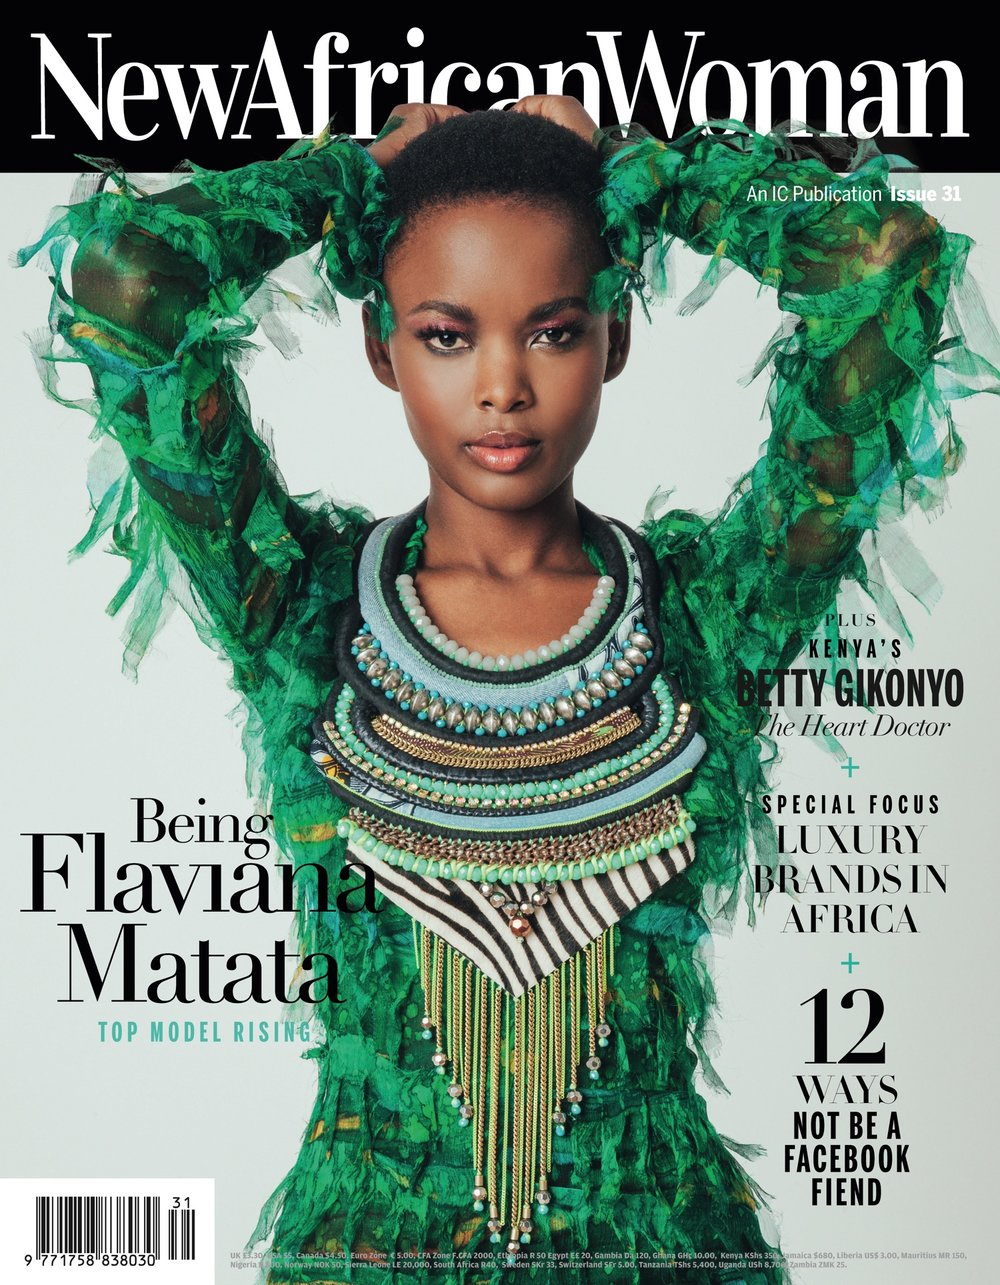 NEW AFRICAN WOMAN (JUNE/JULY) 2015)